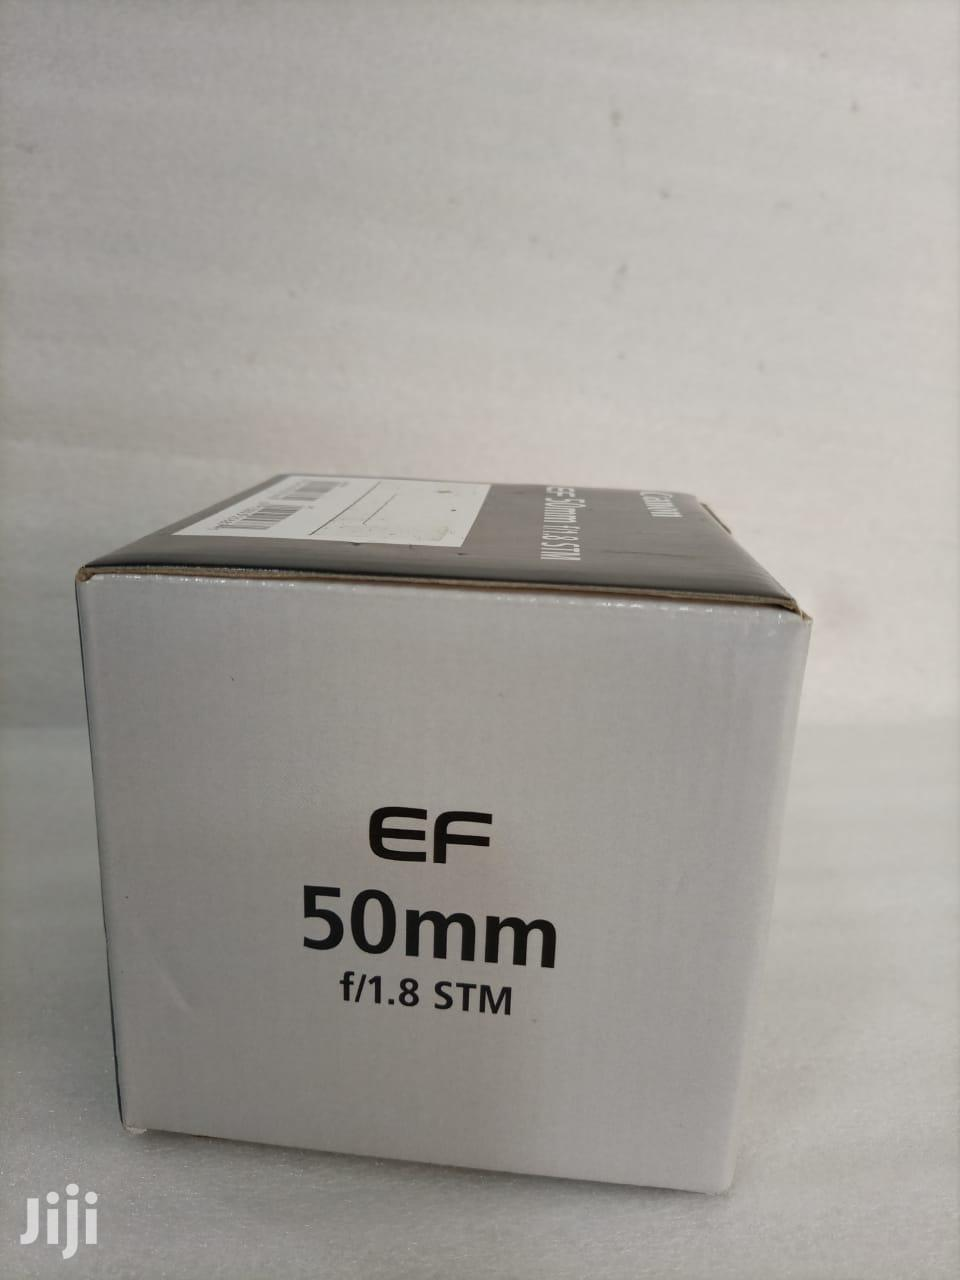 CANON 50mm Lens | Accessories & Supplies for Electronics for sale in Nairobi Central, Nairobi, Kenya